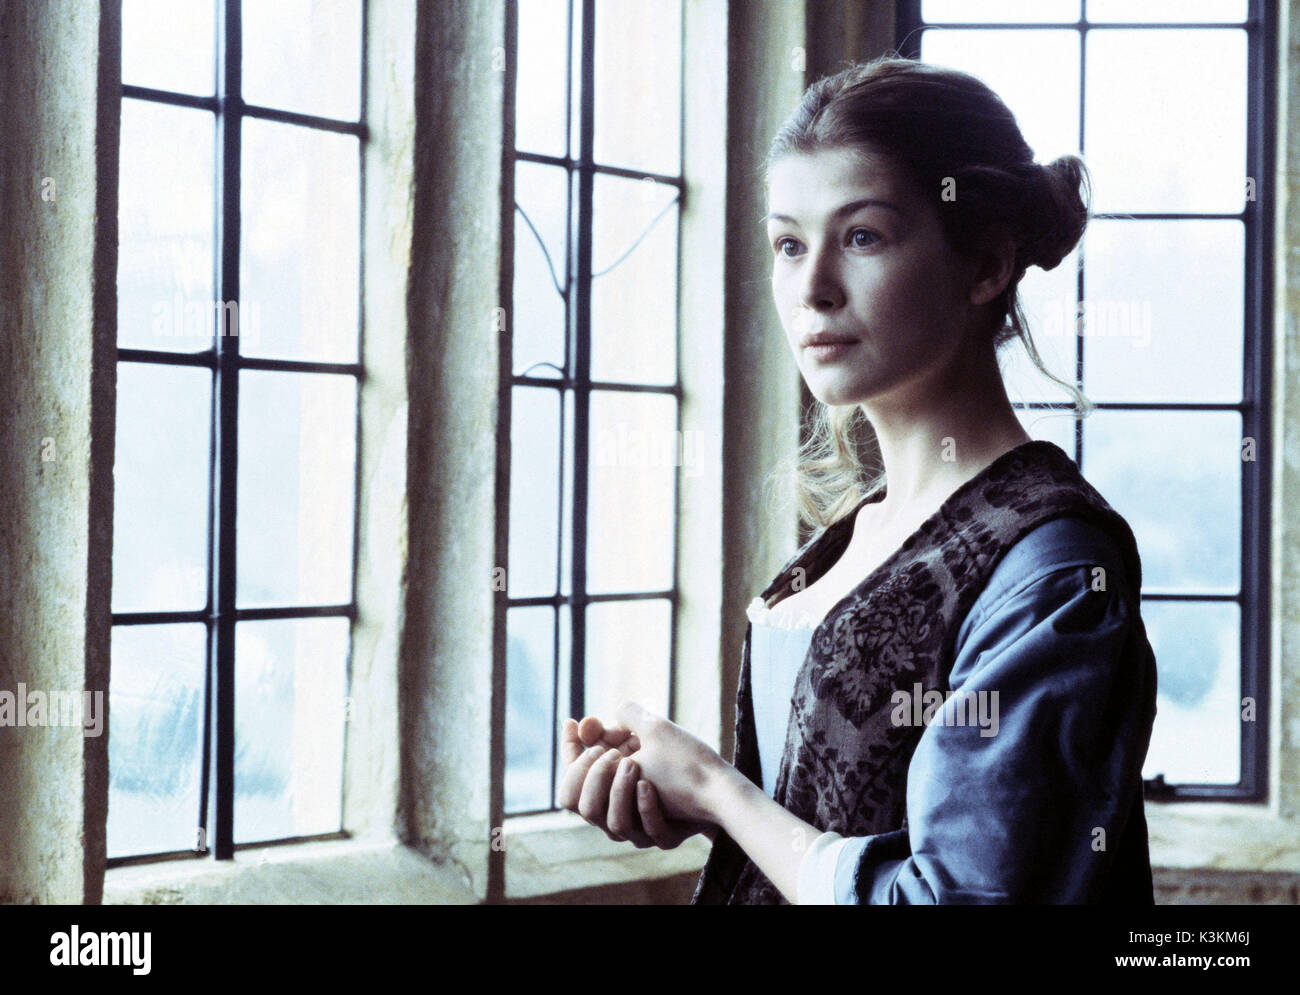 THE LIBERTINE ROSAMUND PIKE       Date: 2004 - Stock Image